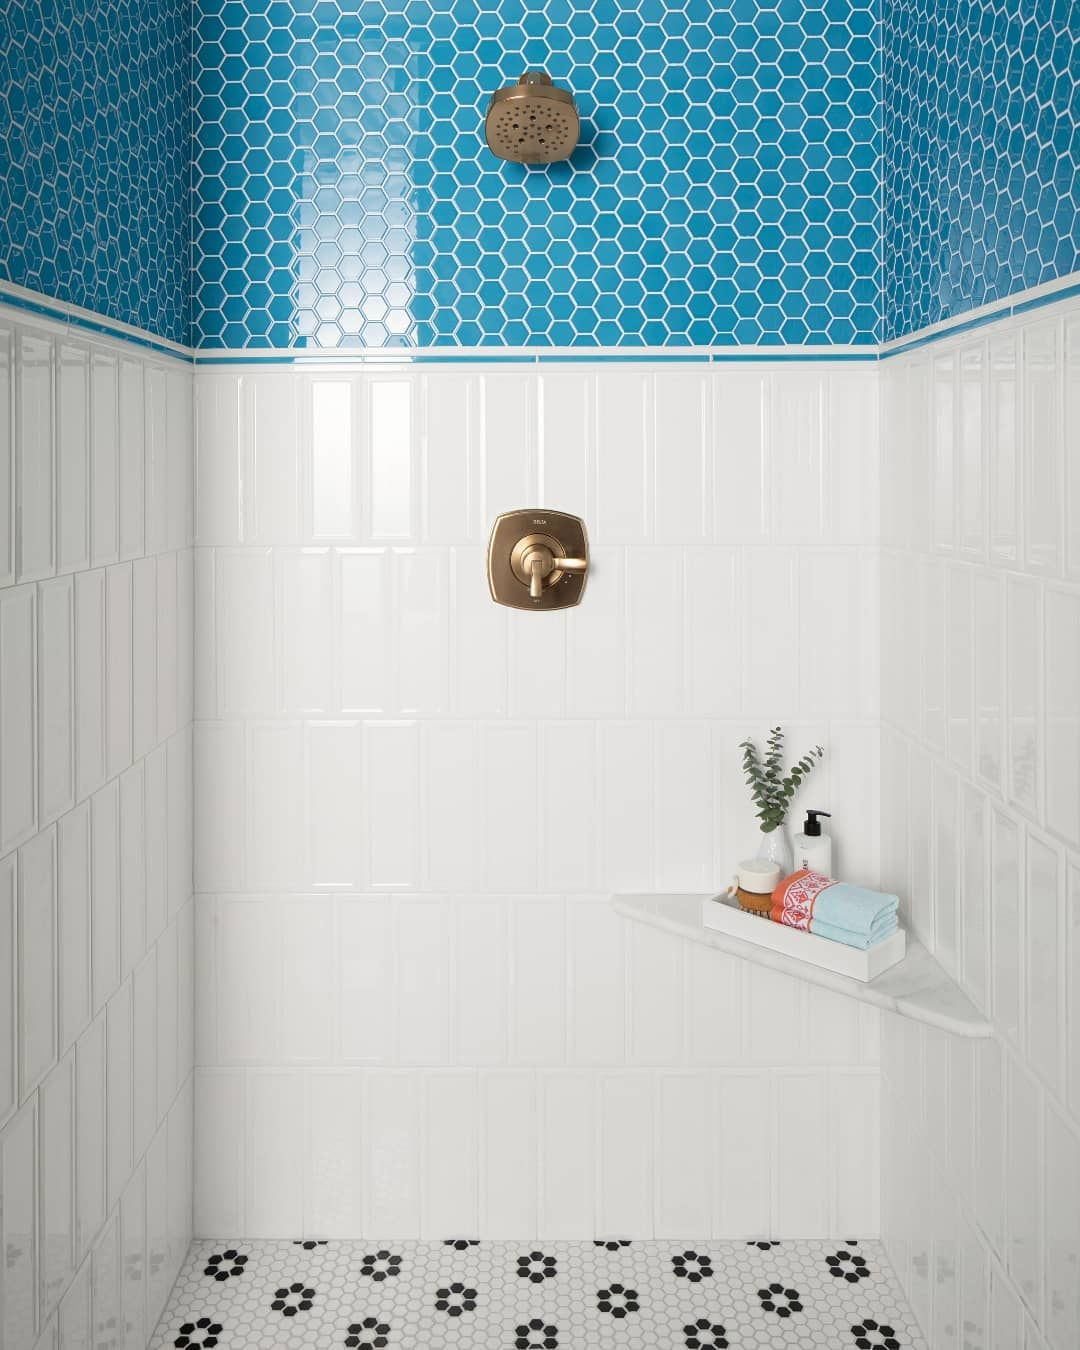 Something Bright Blue Shiny And New Bathroom Wall Tile Design Bathroom Tile Designs Small Bathroom Layout